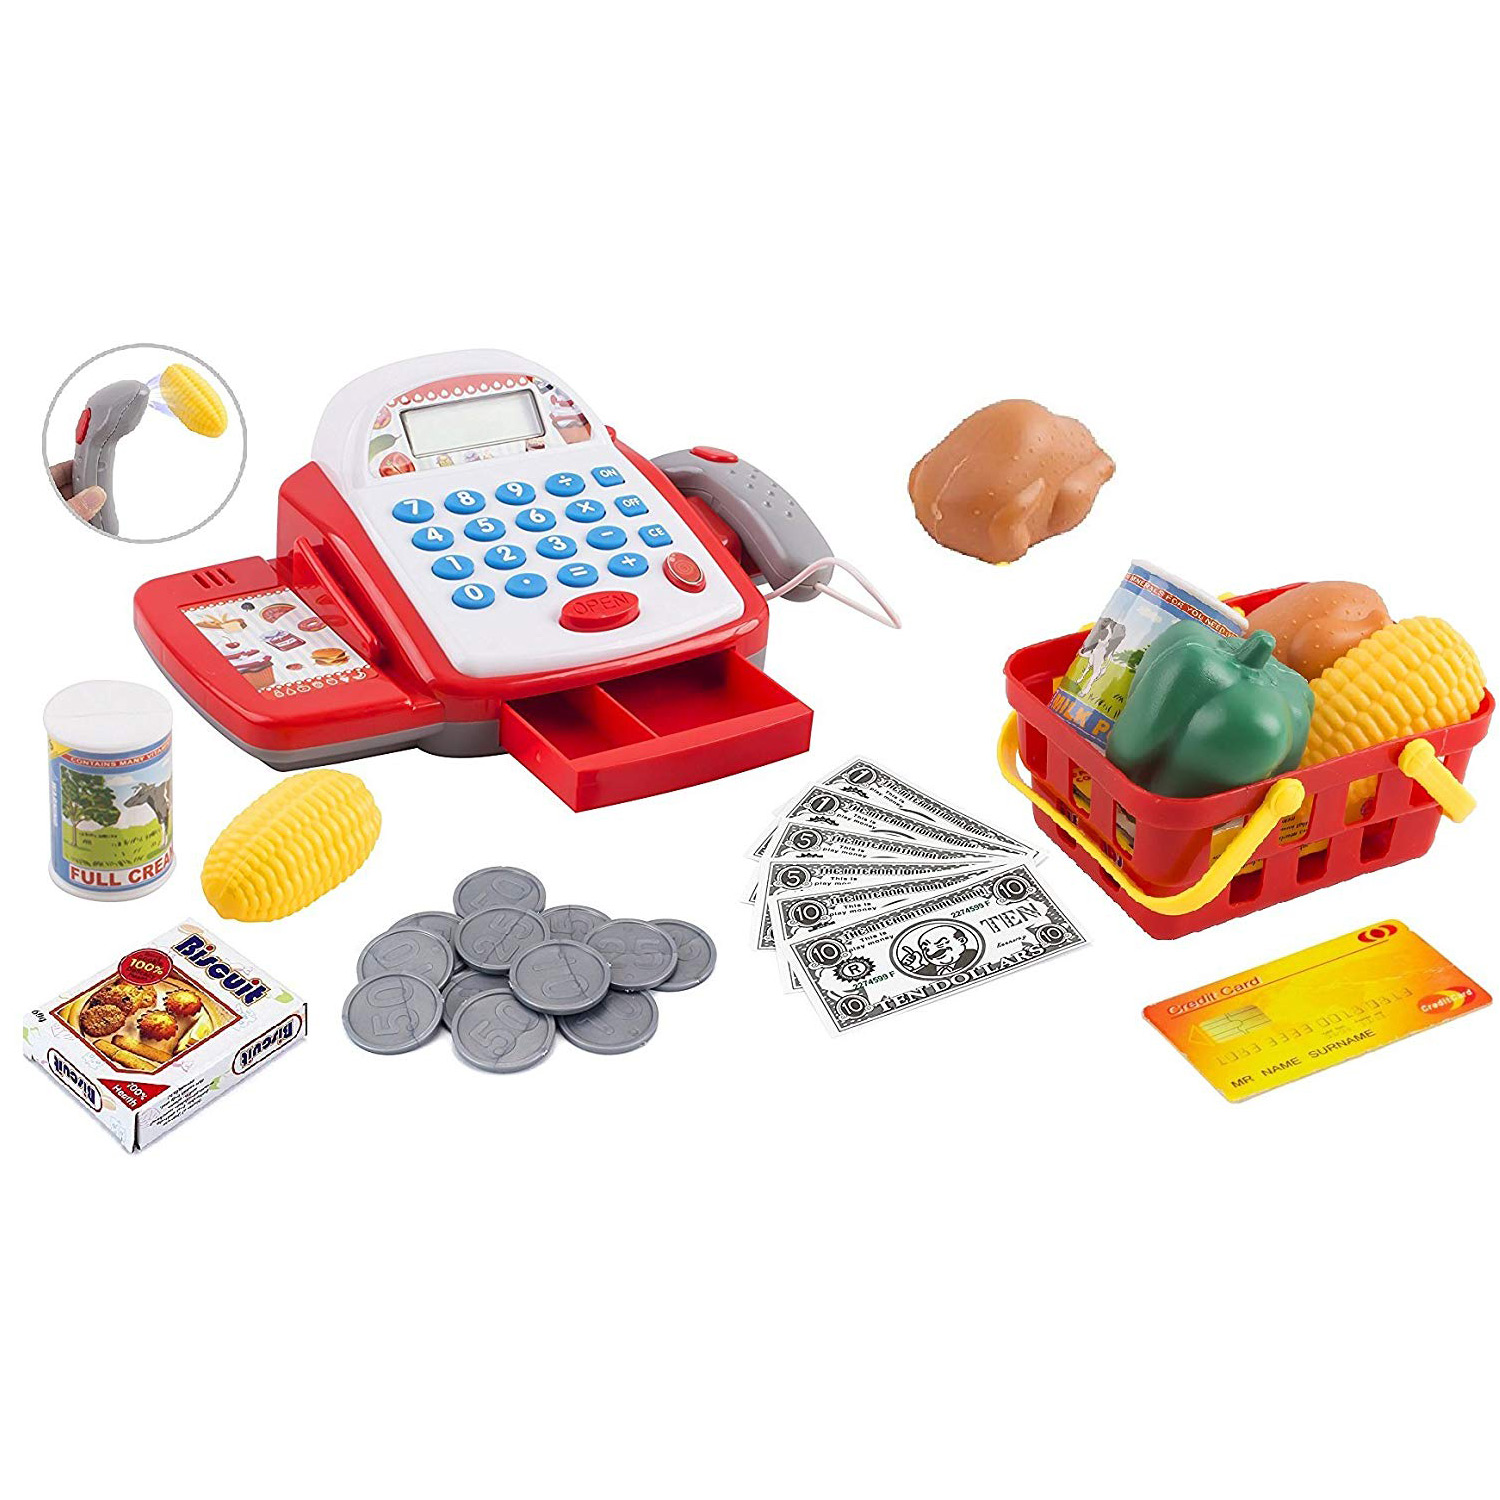 Toy Cash Register Pretend Play Supermarket Cashier Playset Colorful Children's Checkout With Calculator And Sounds Educational Learning Toys For Kids Toddlers And Preschool (white/Red)